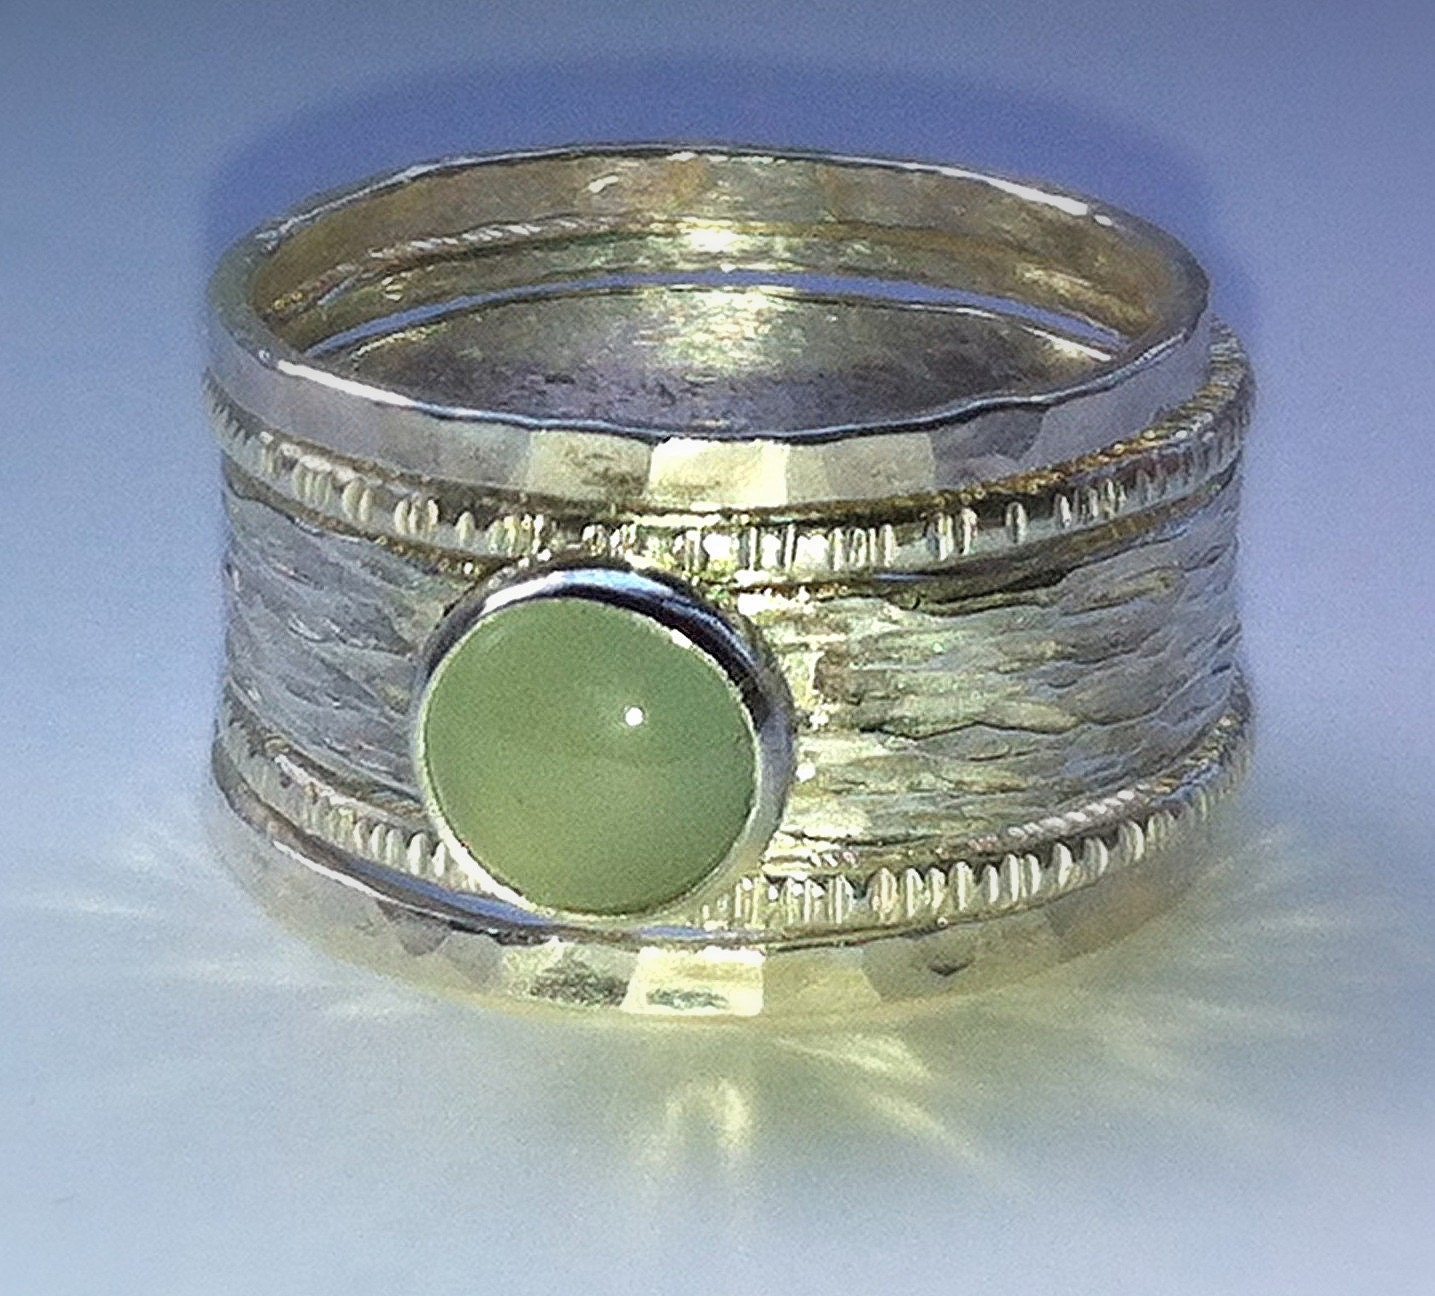 unique handmade aquamarine rustic recycled sterling silver